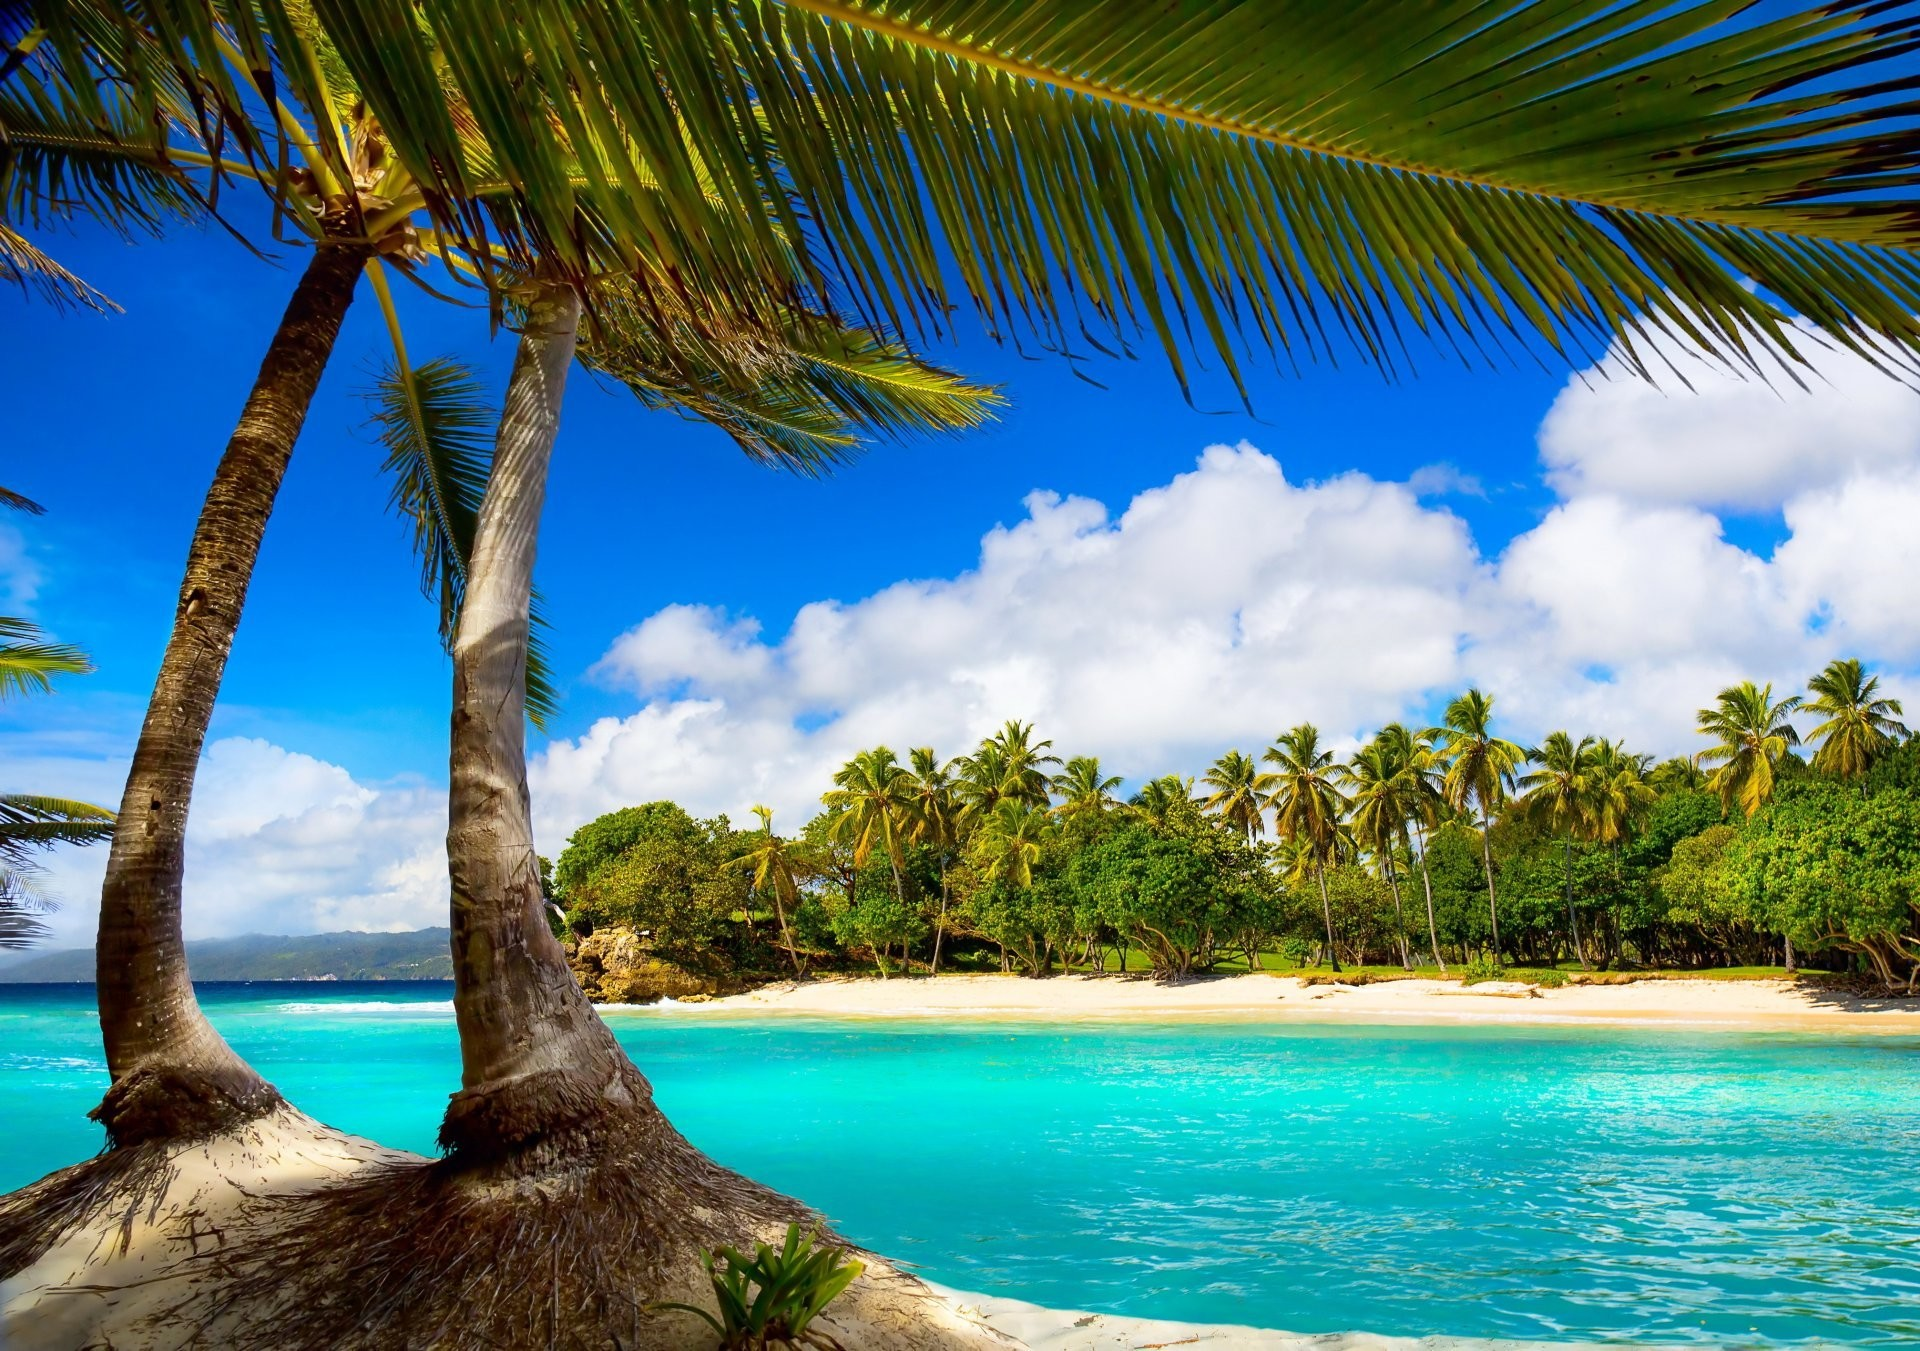 Hd Tropical Island Beach Paradise Wallpapers And Backgrounds: Paradise Beach Wallpaper ·① WallpaperTag